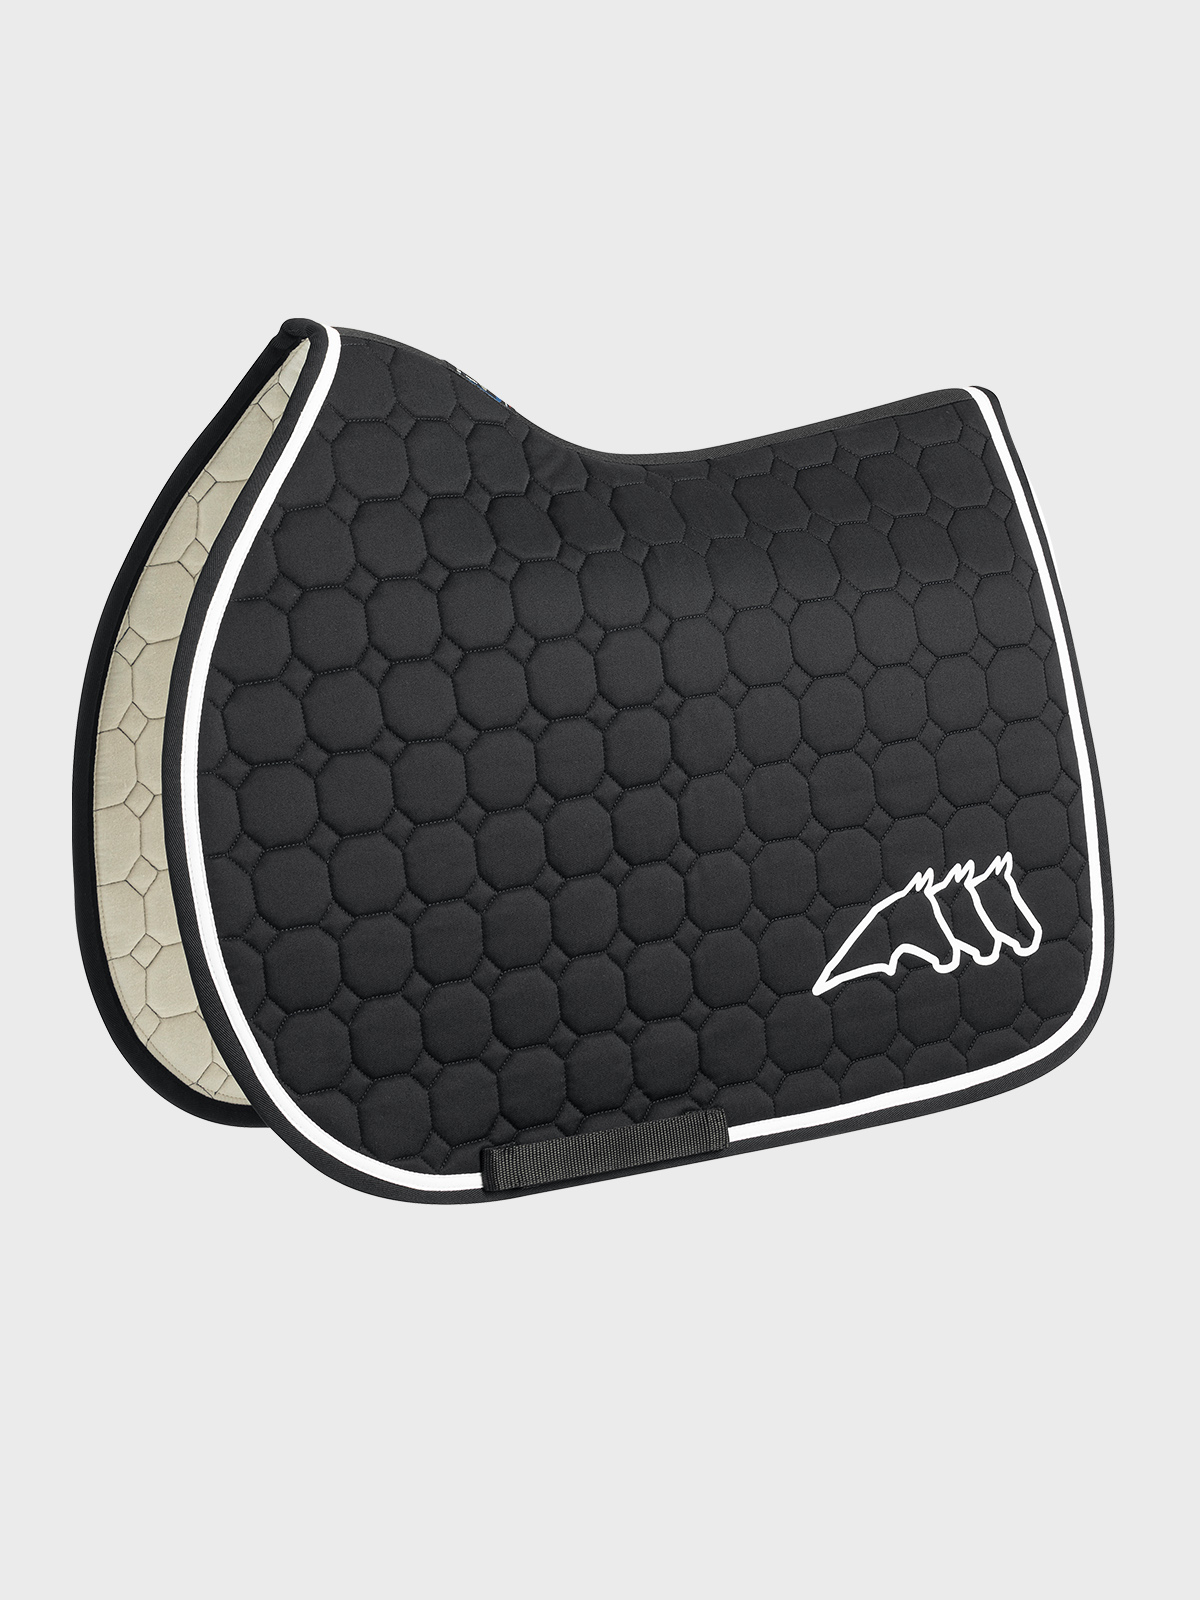 Cristophec OCTAGON QUILTED SADDLE PAD 2